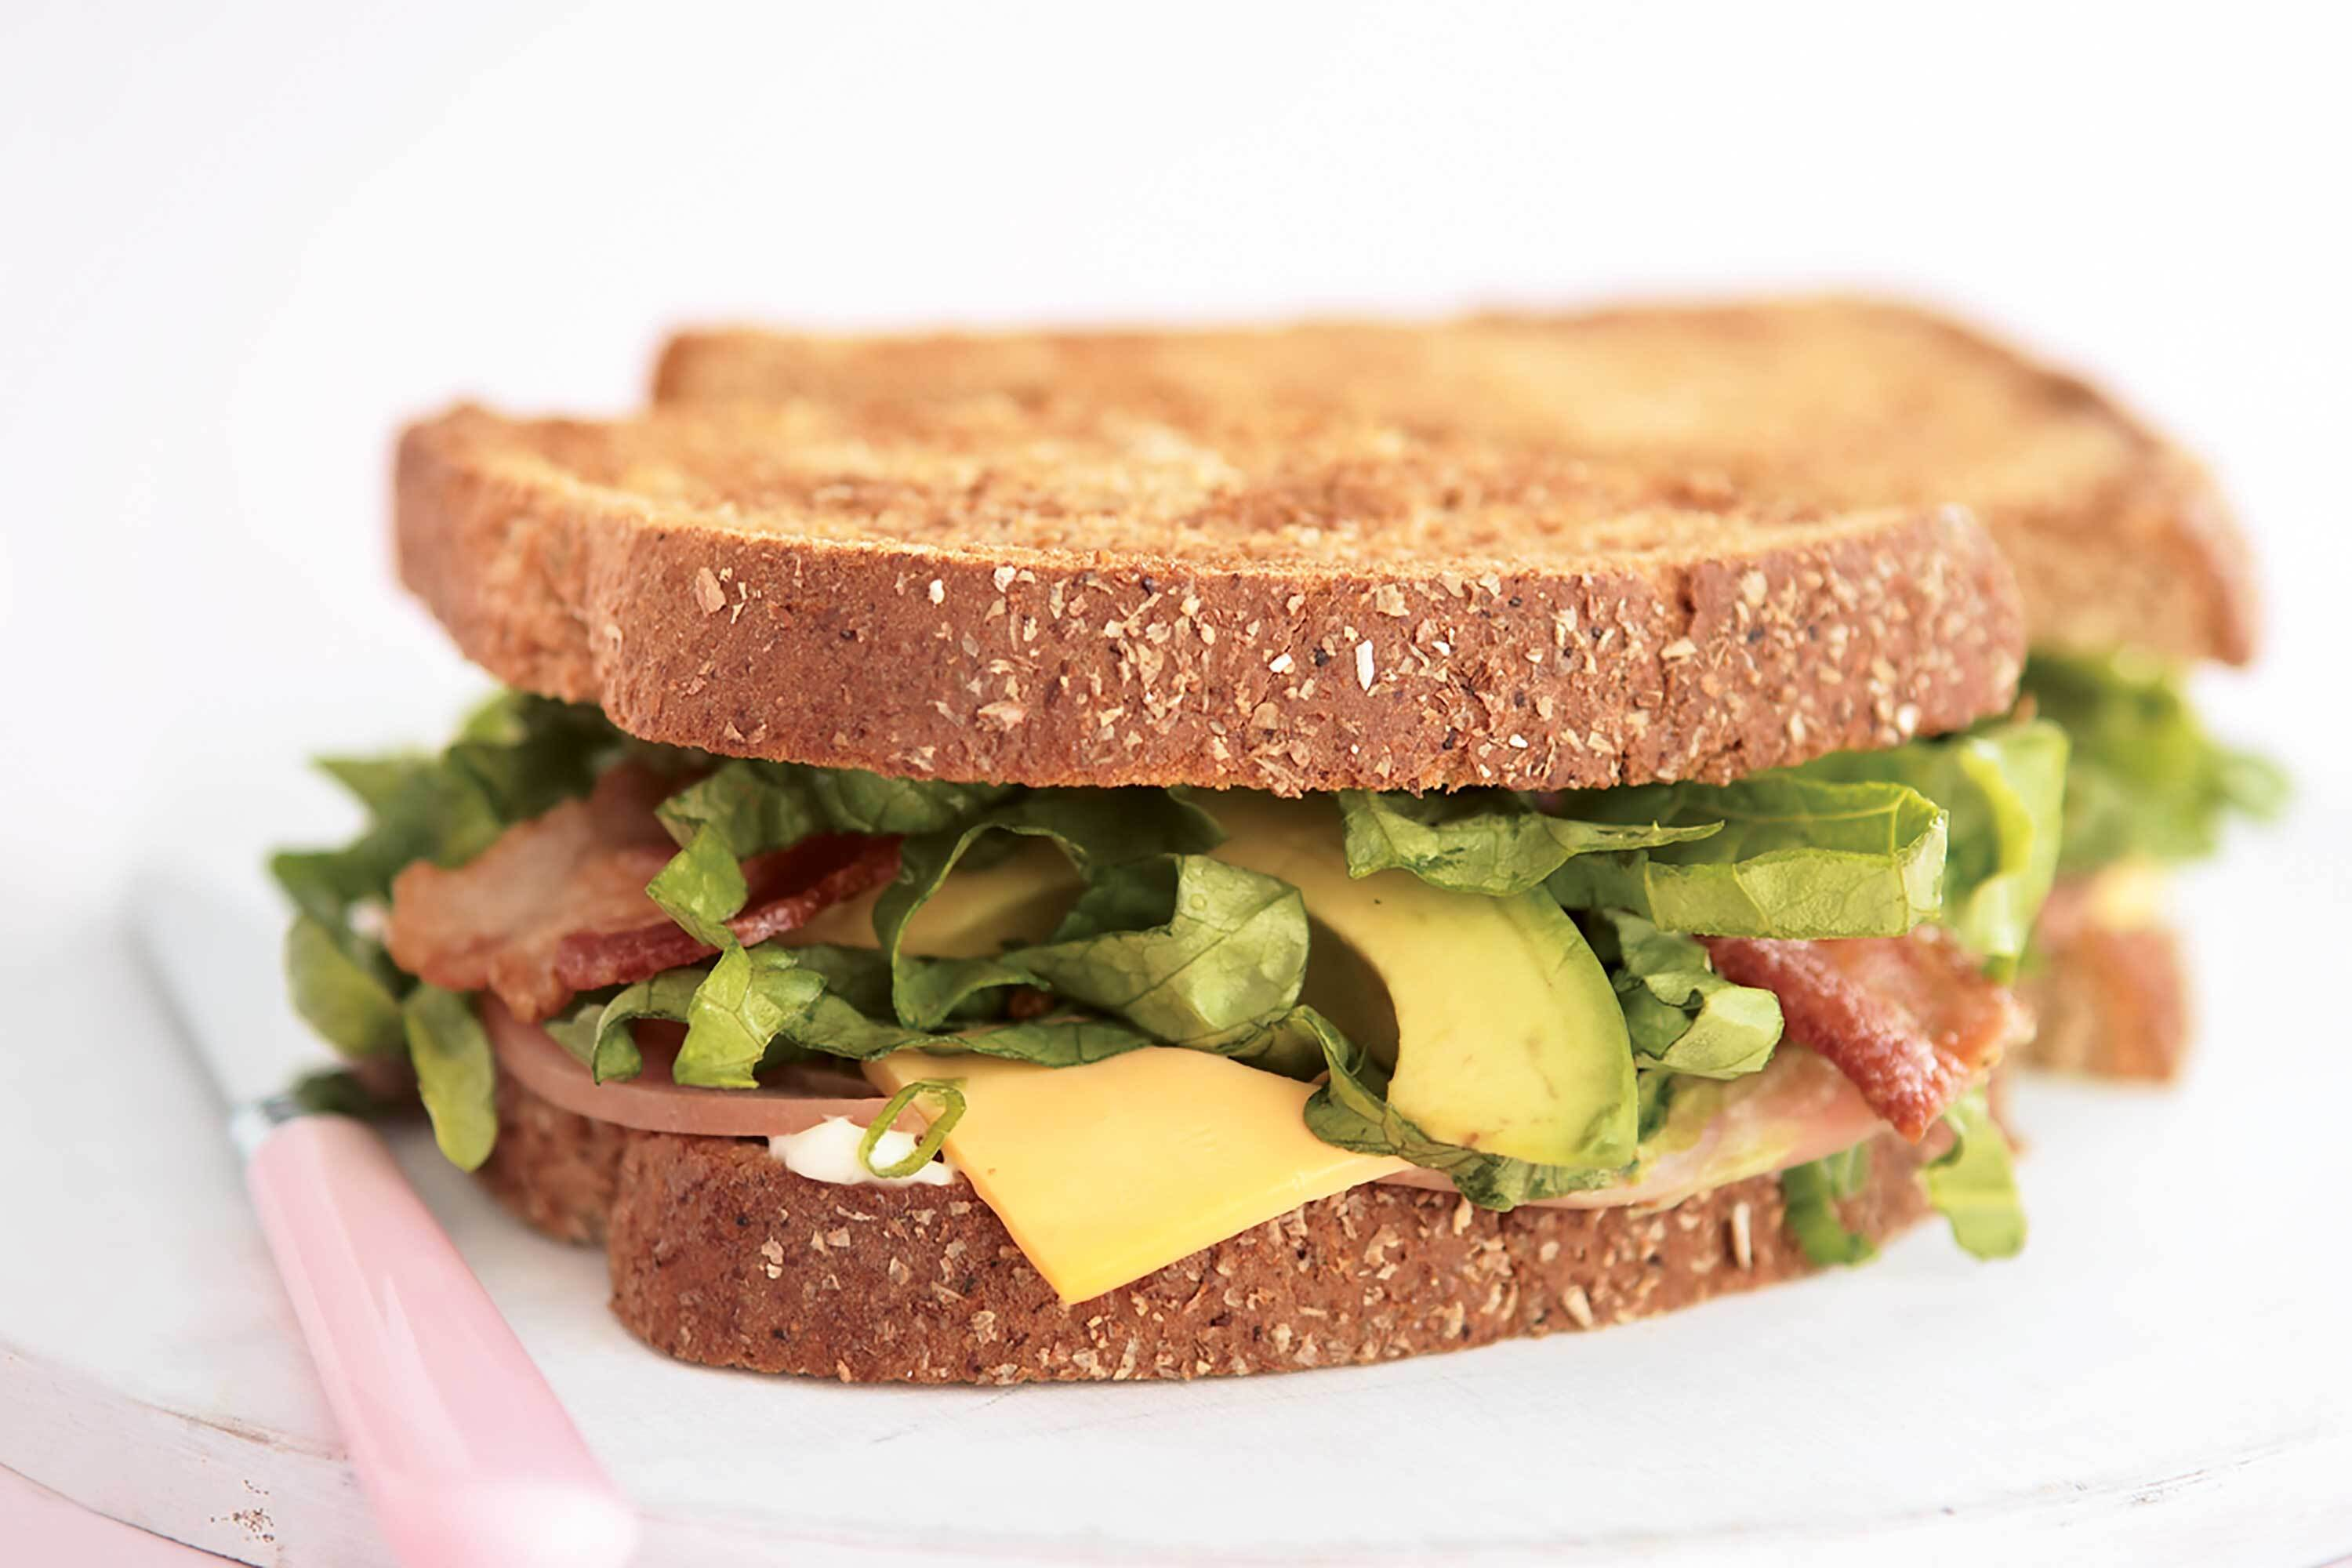 Avocado| Bacon| Ham & Cheese Sandwich